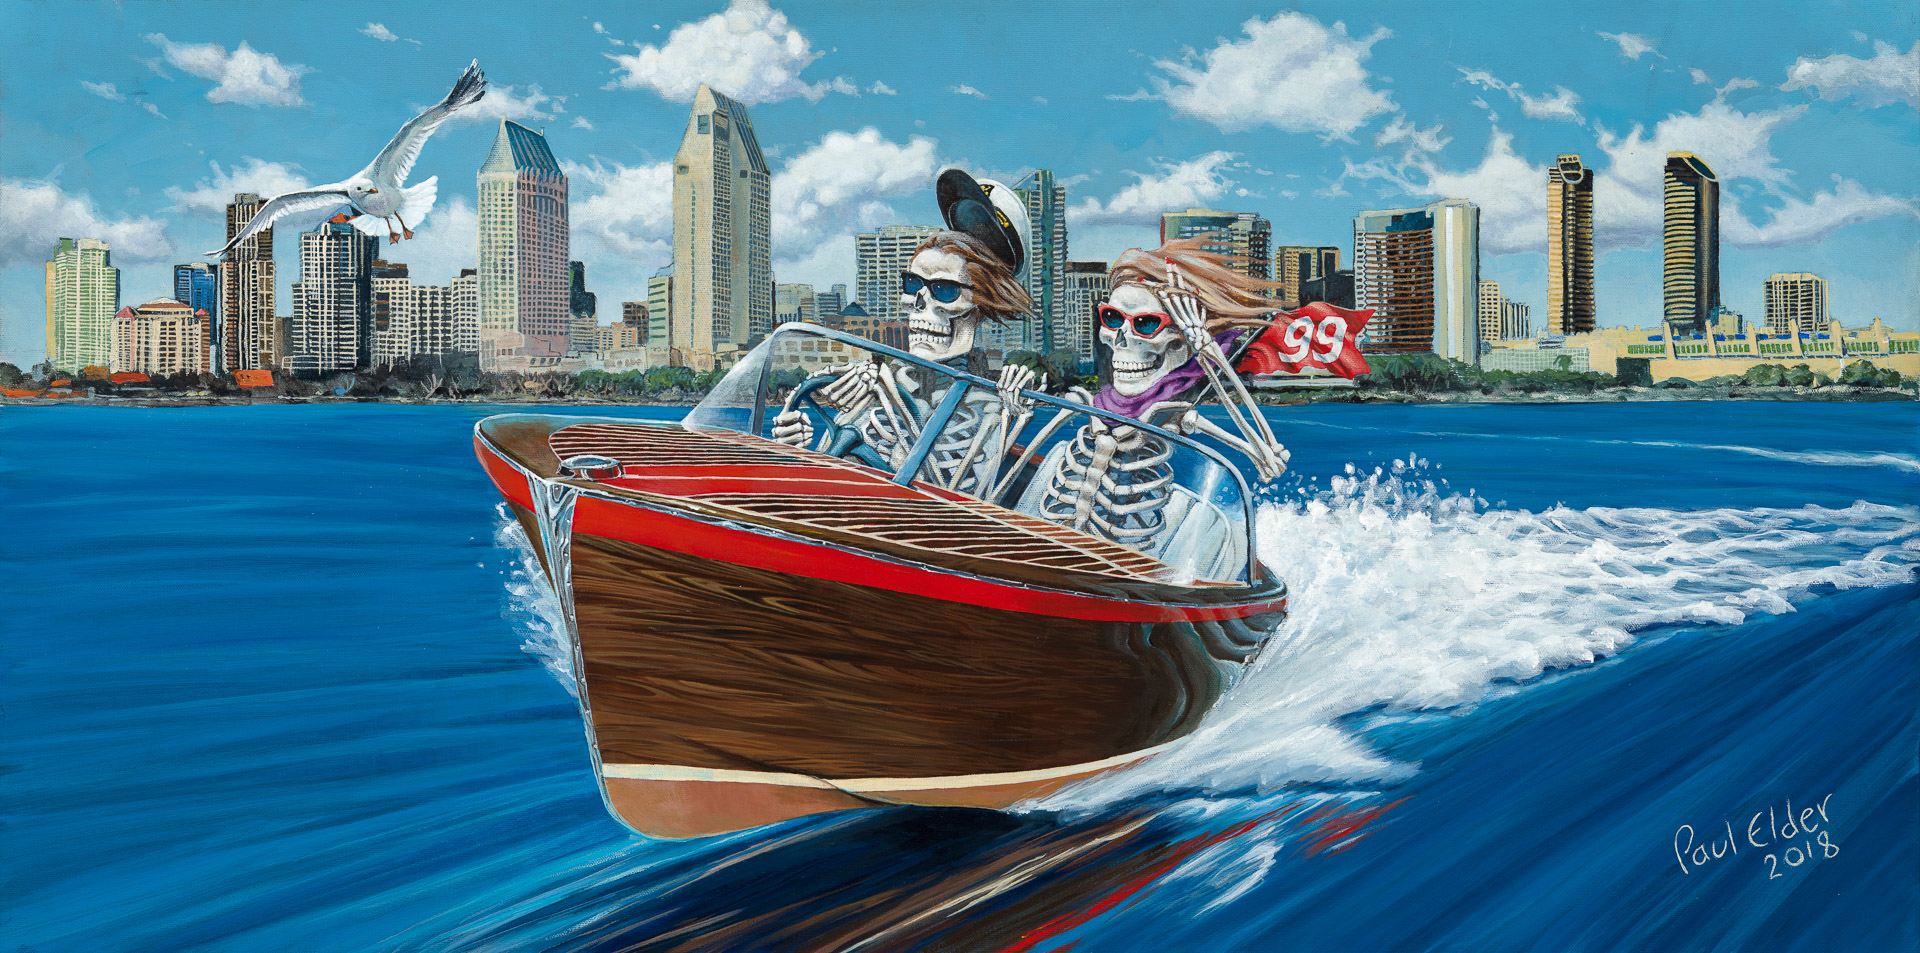 Art Print - Speed Boat THUMBNAIL